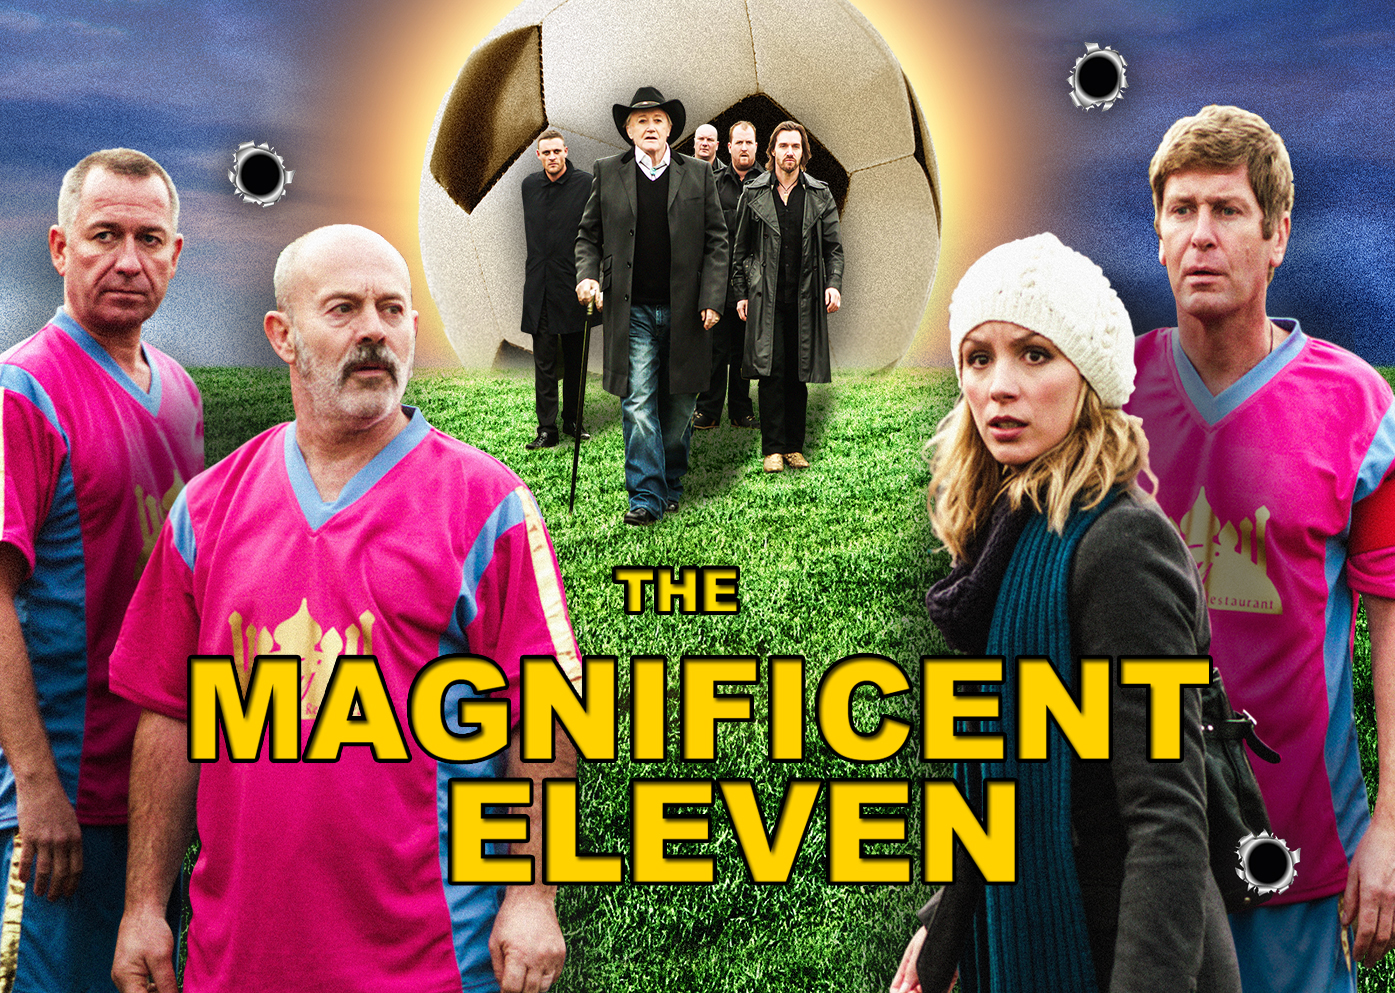 The Magnificent Eleven Film poster